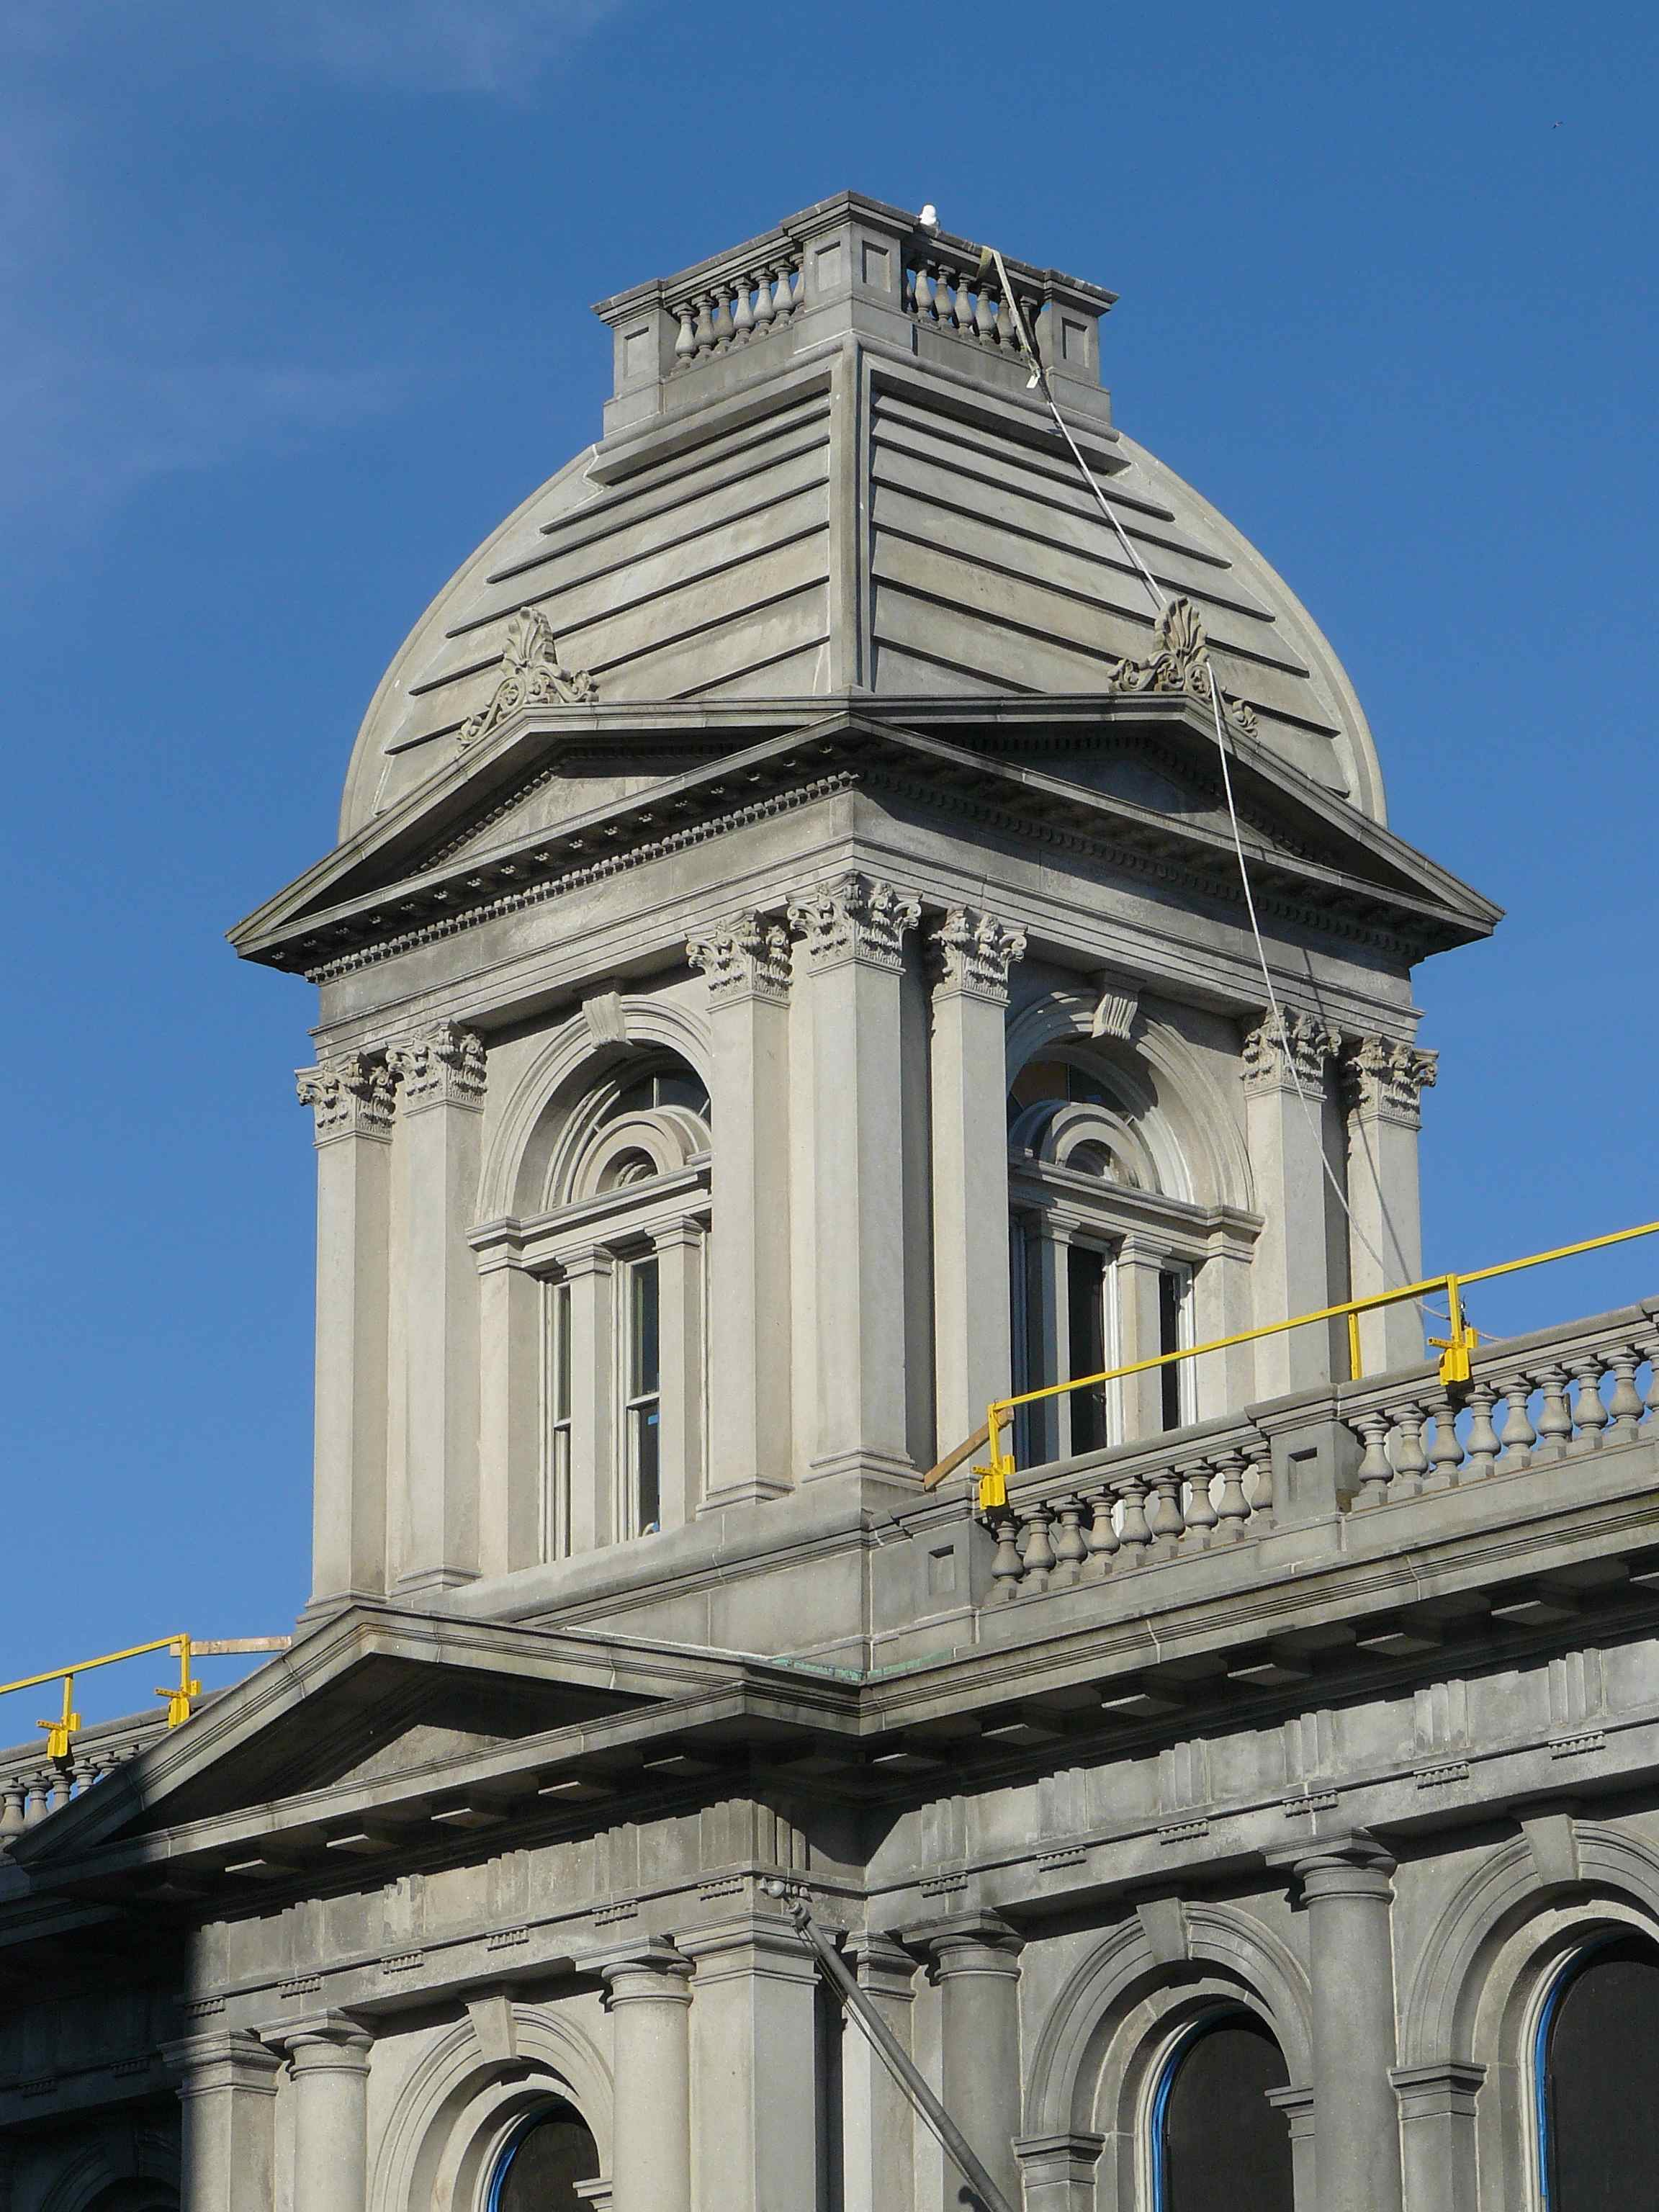 312_Fore_St_June_2012_02_square_tower_with_convex_Mansard_roof.jpg